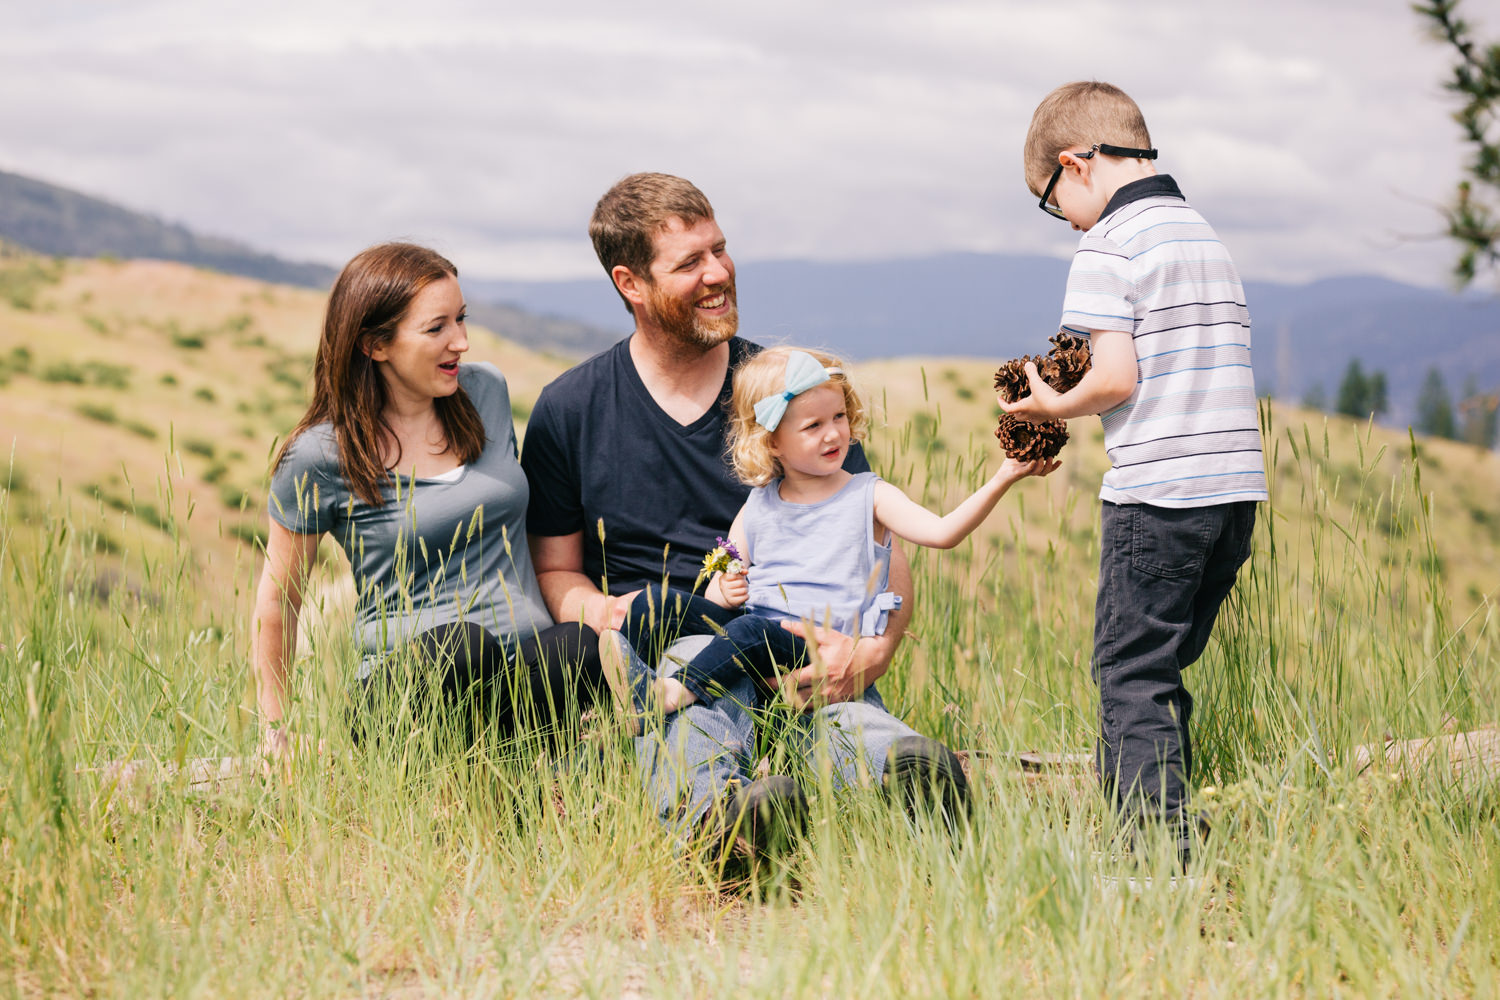 quilchena-park-family-photography-quilchena-park-lifestlye-family-photographer-julie-dorge (51 of 56).jpg